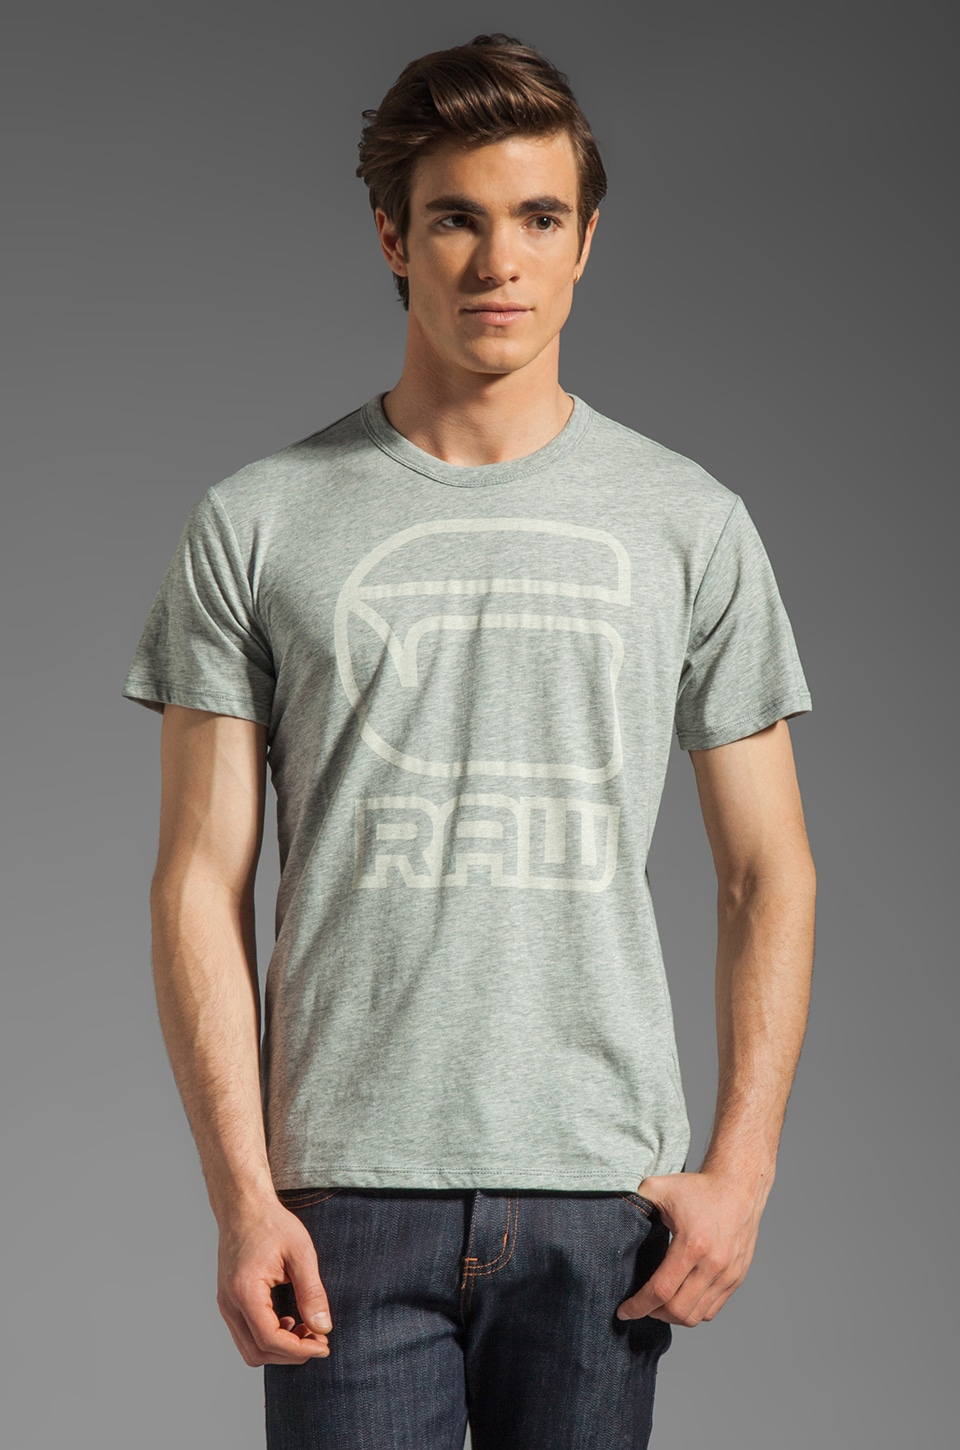 G-Star Charge Tee in Grey Heather